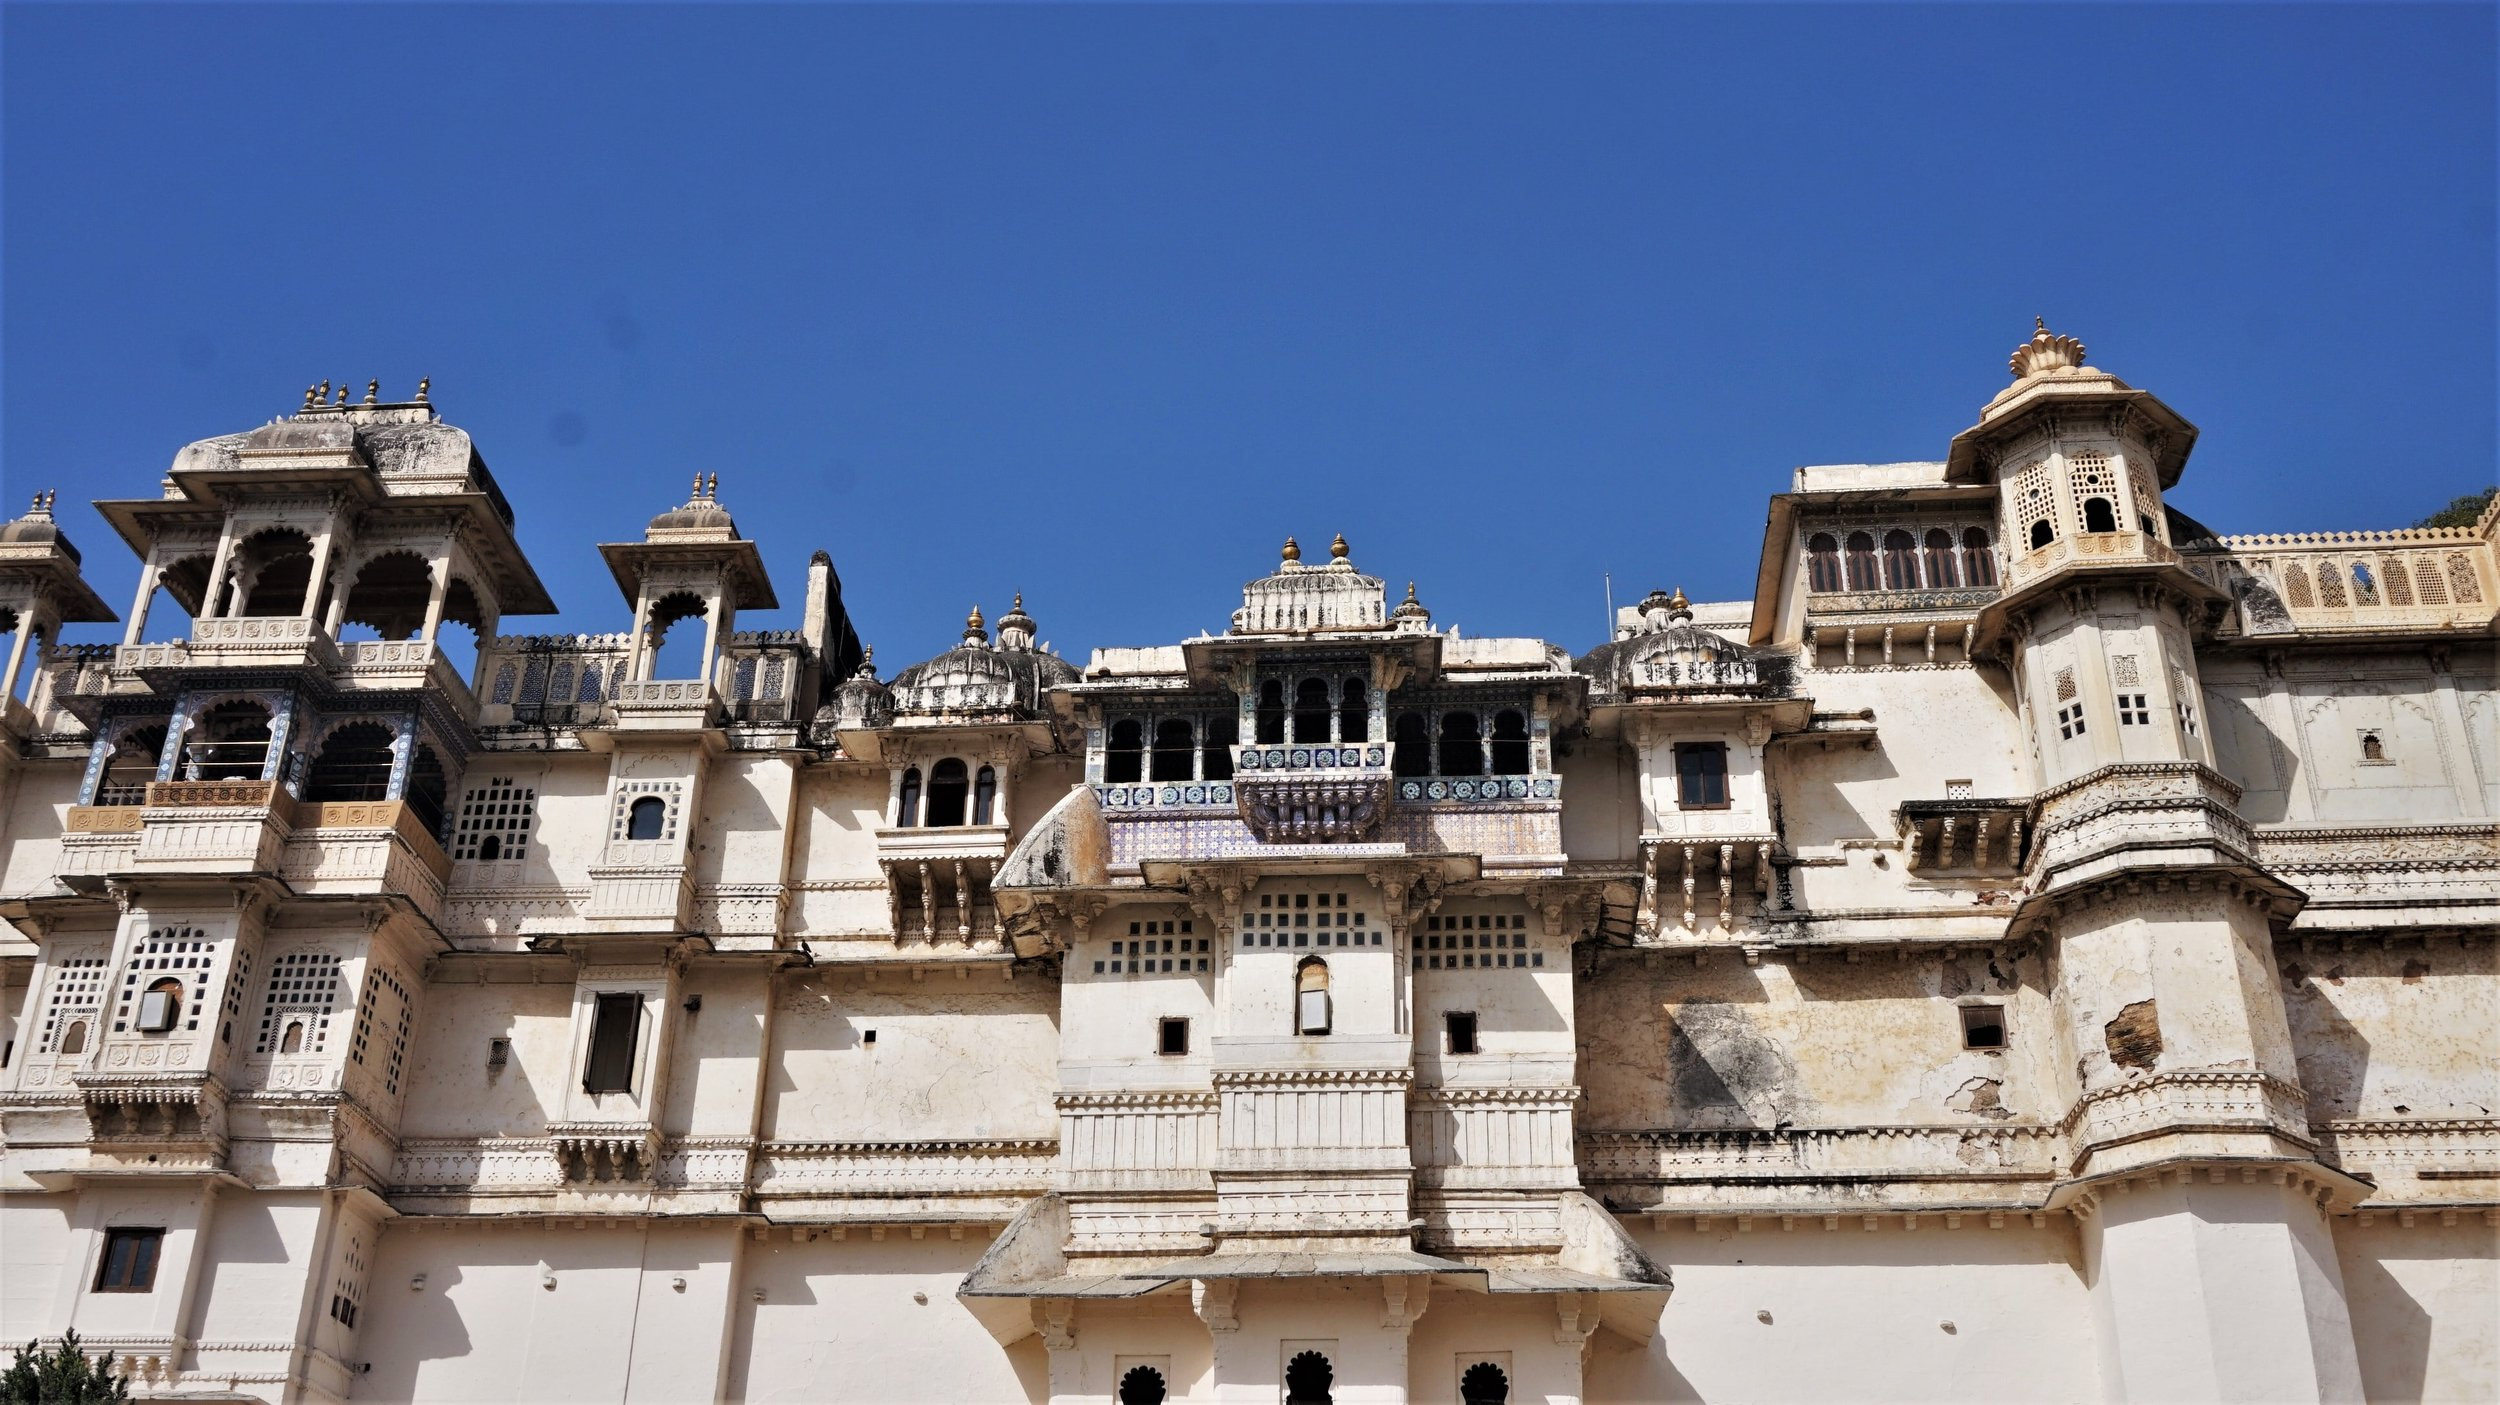 The Udaipur City Palace is one of the best places to visit in Udaipur. This palace should be on your list of things to do in Udaipur!